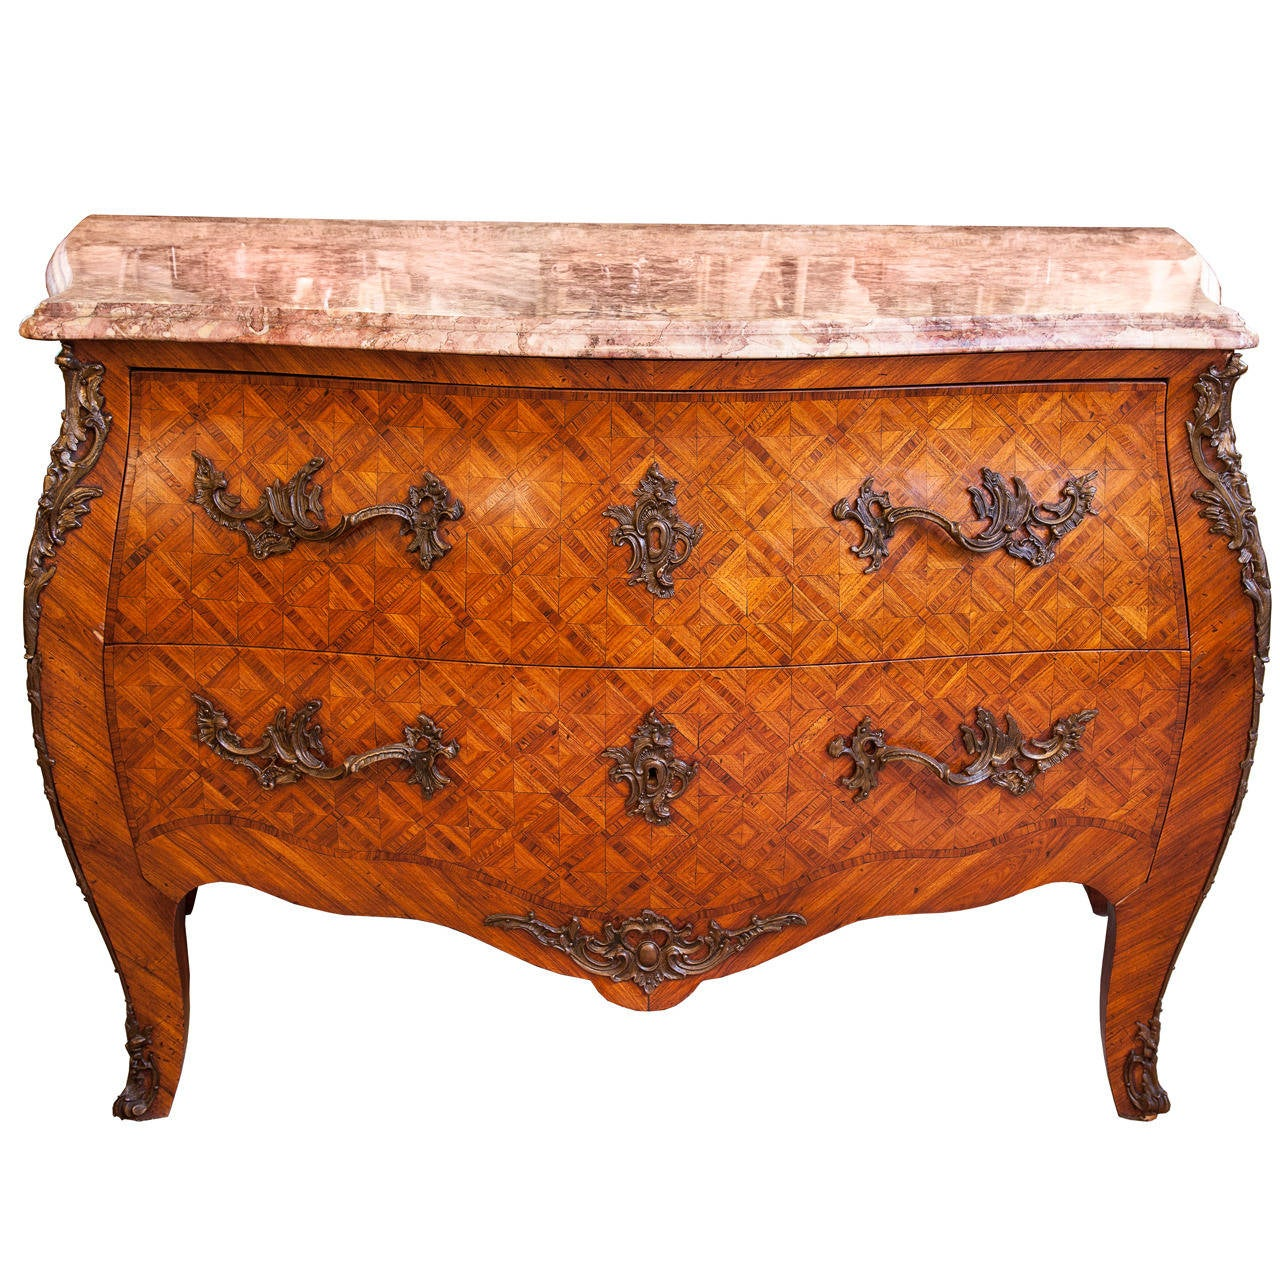 French Commode, 20th c. bombe chest with bronze ormolu mounts